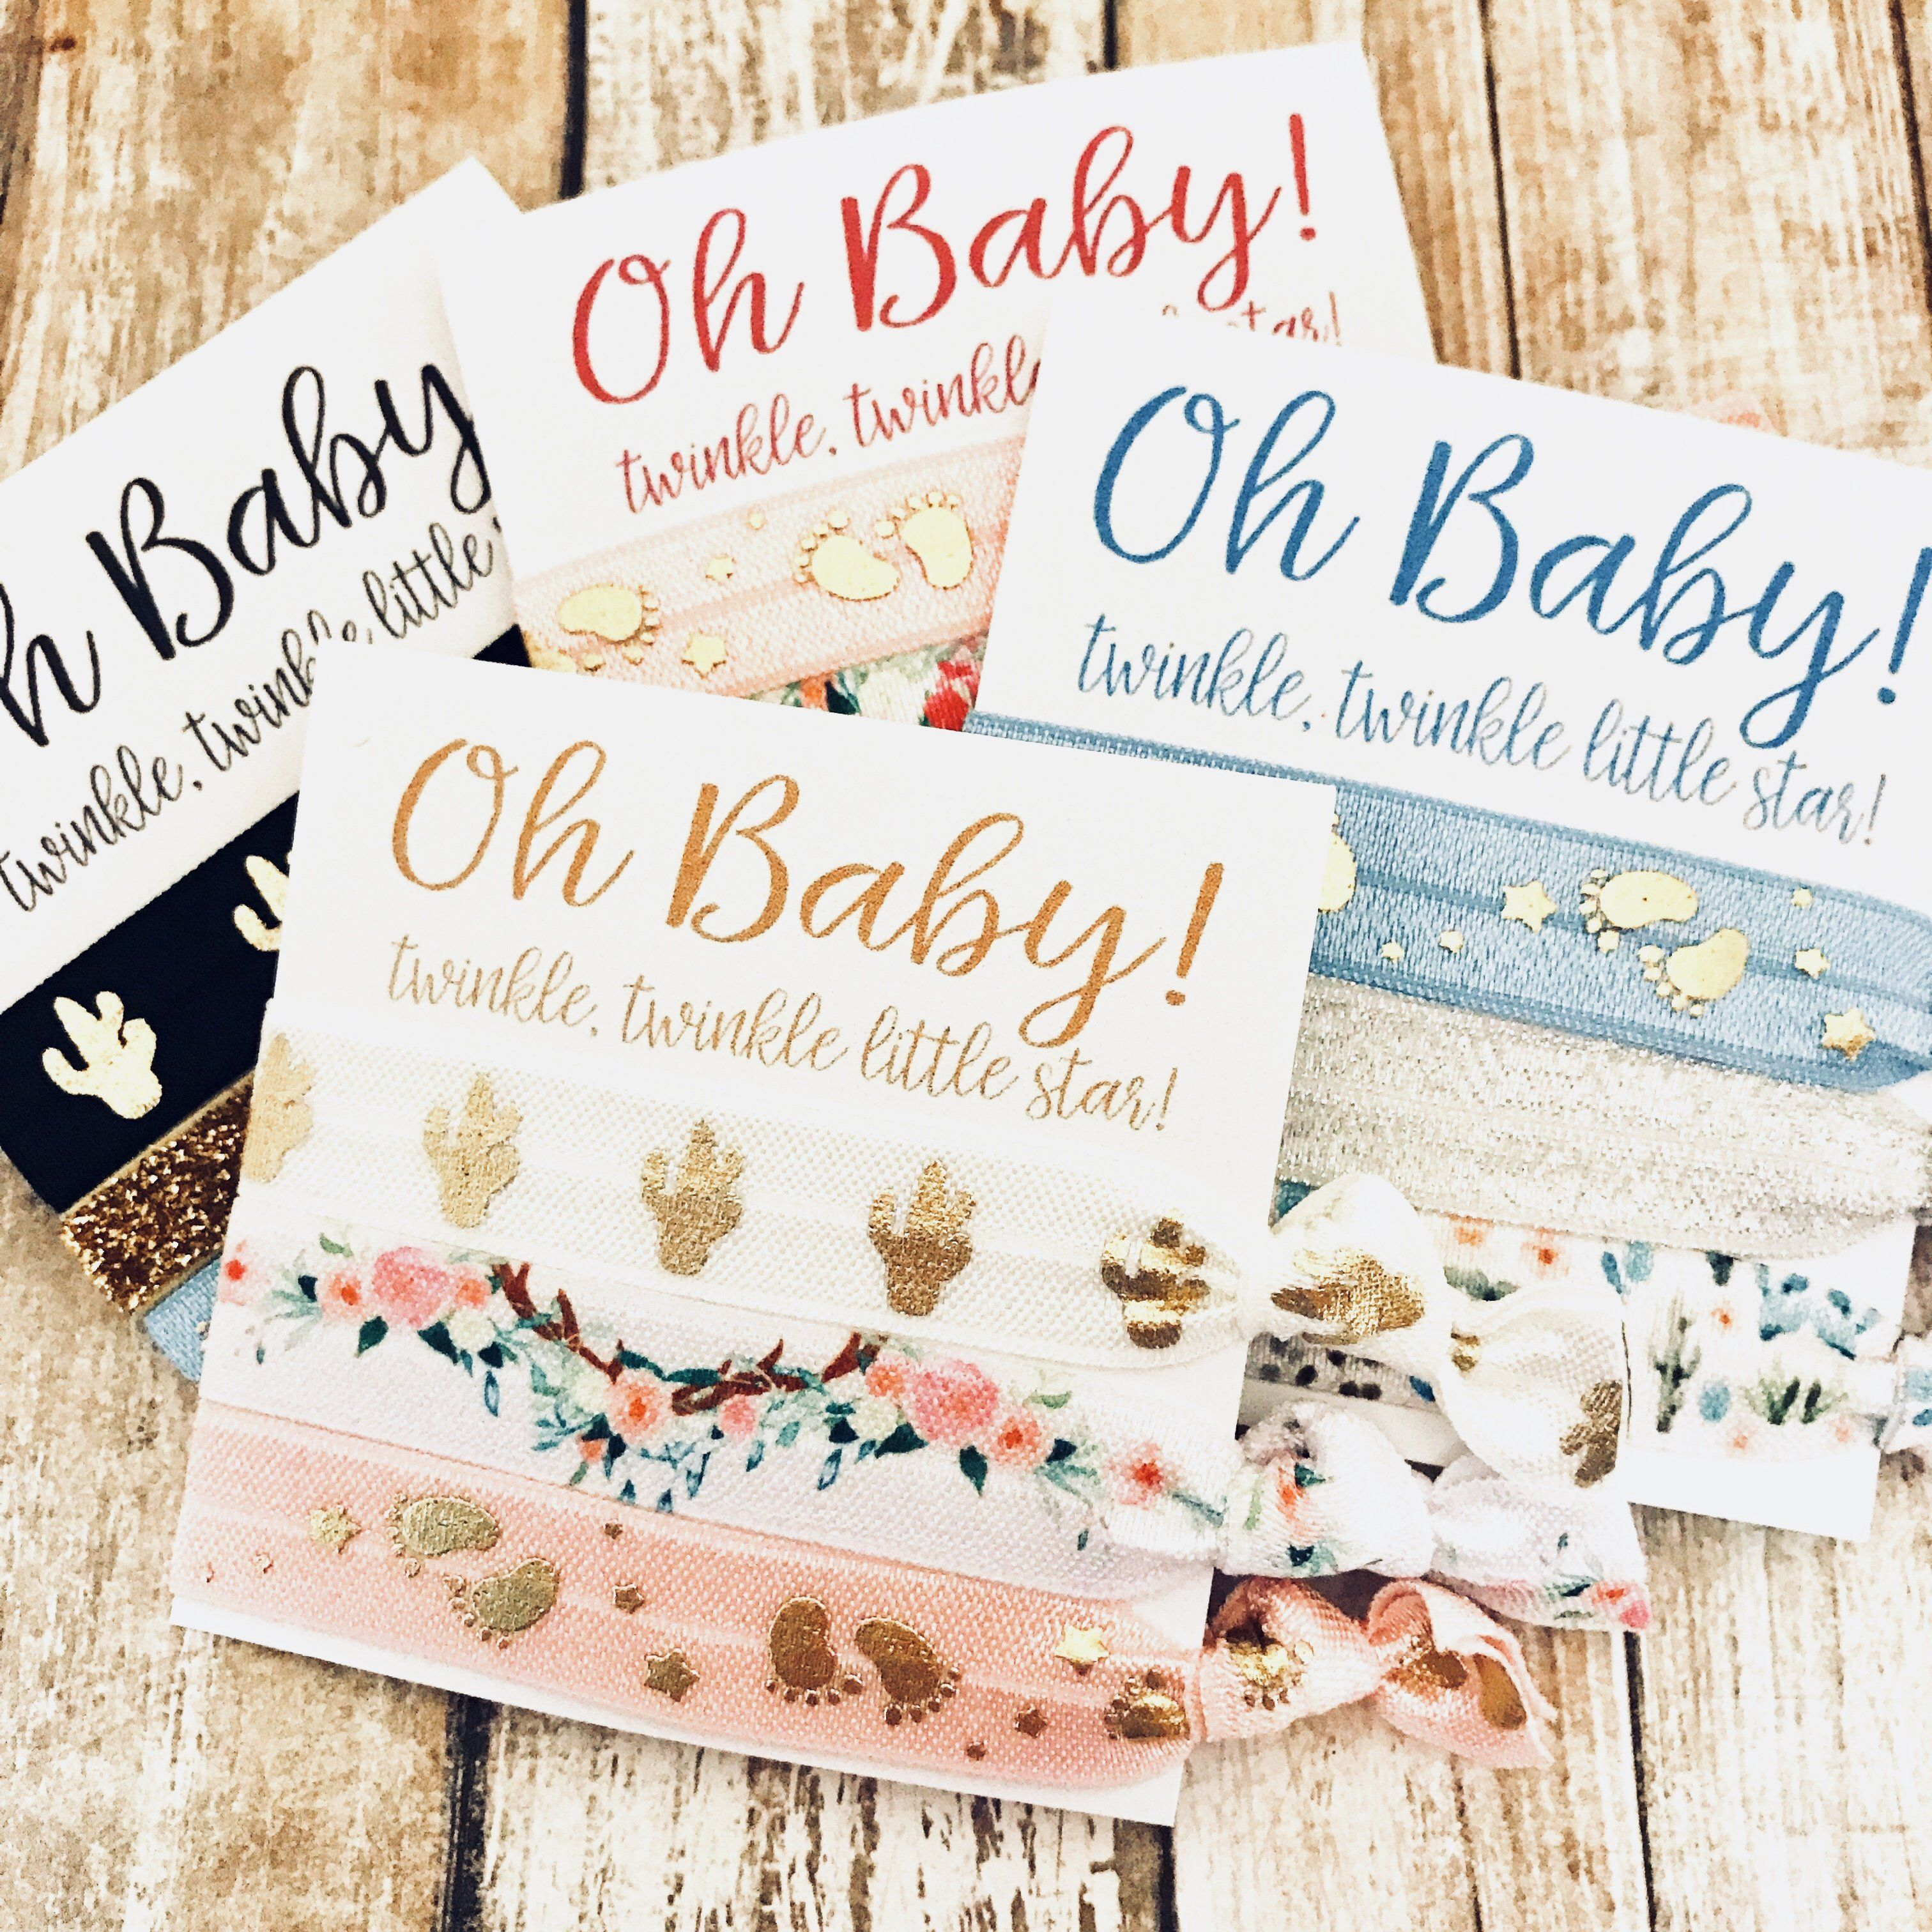 OH Baby Baby Shower Favors